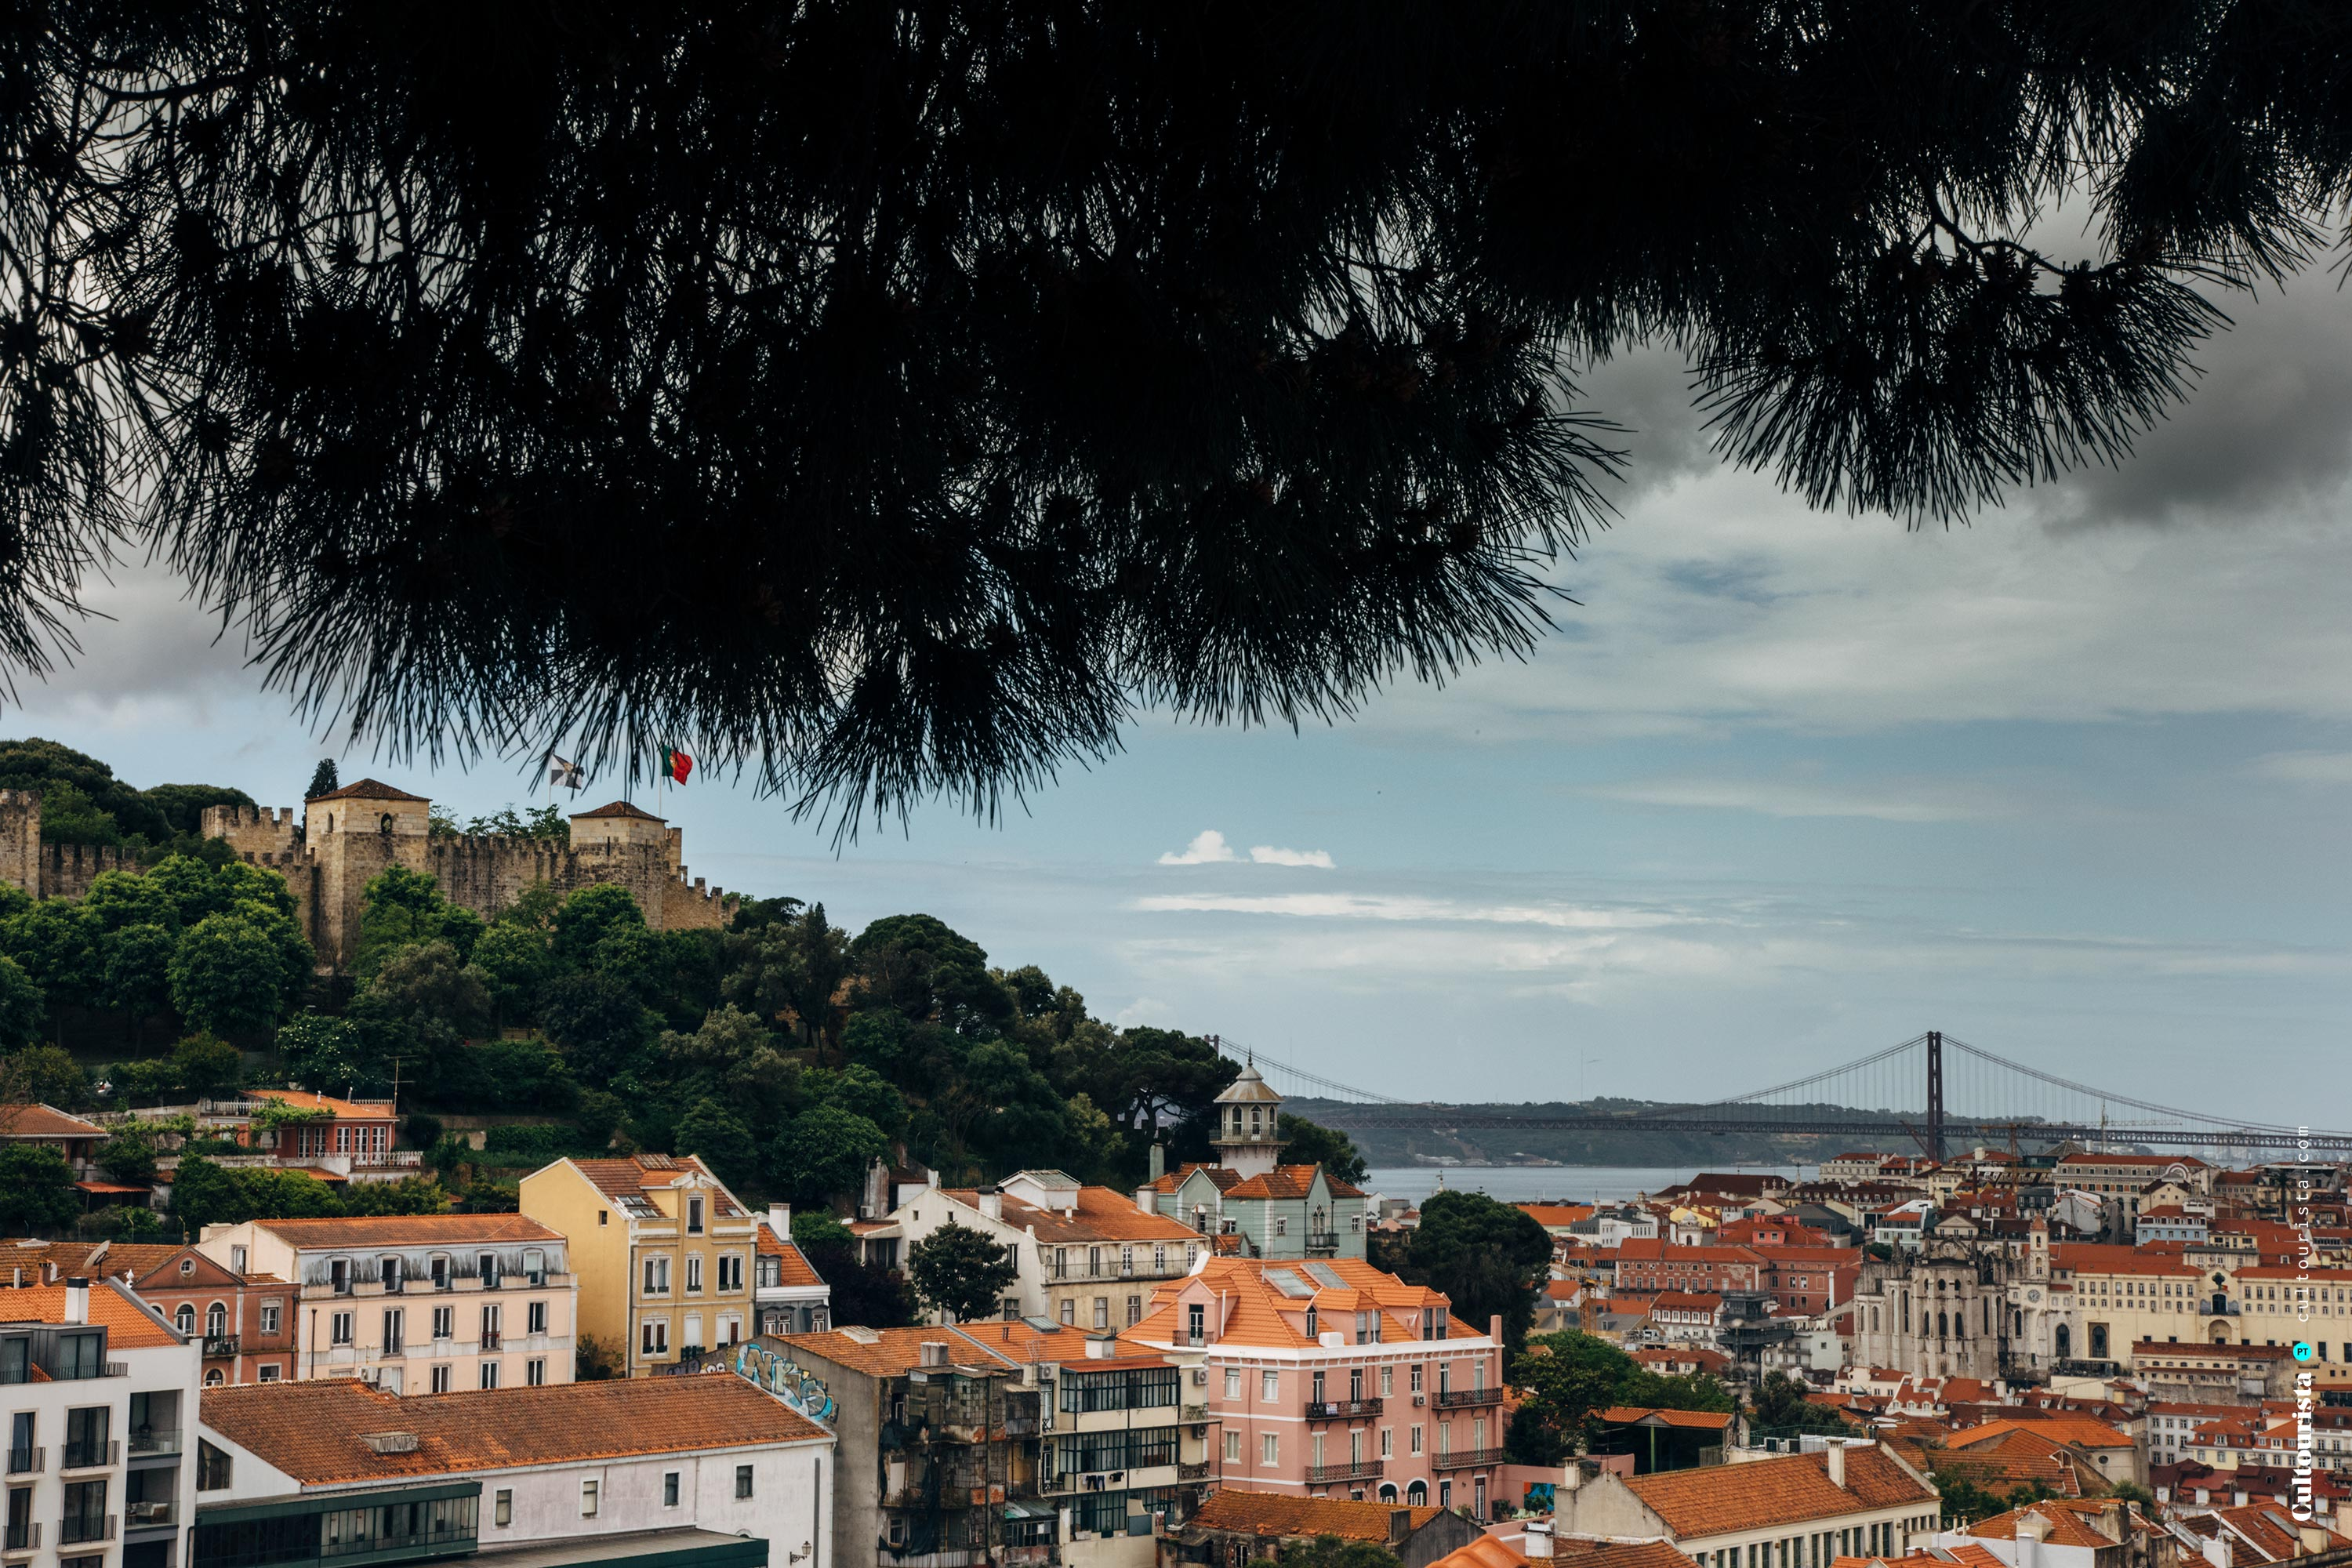 Sight from the viewpoint Graça in Lisbon